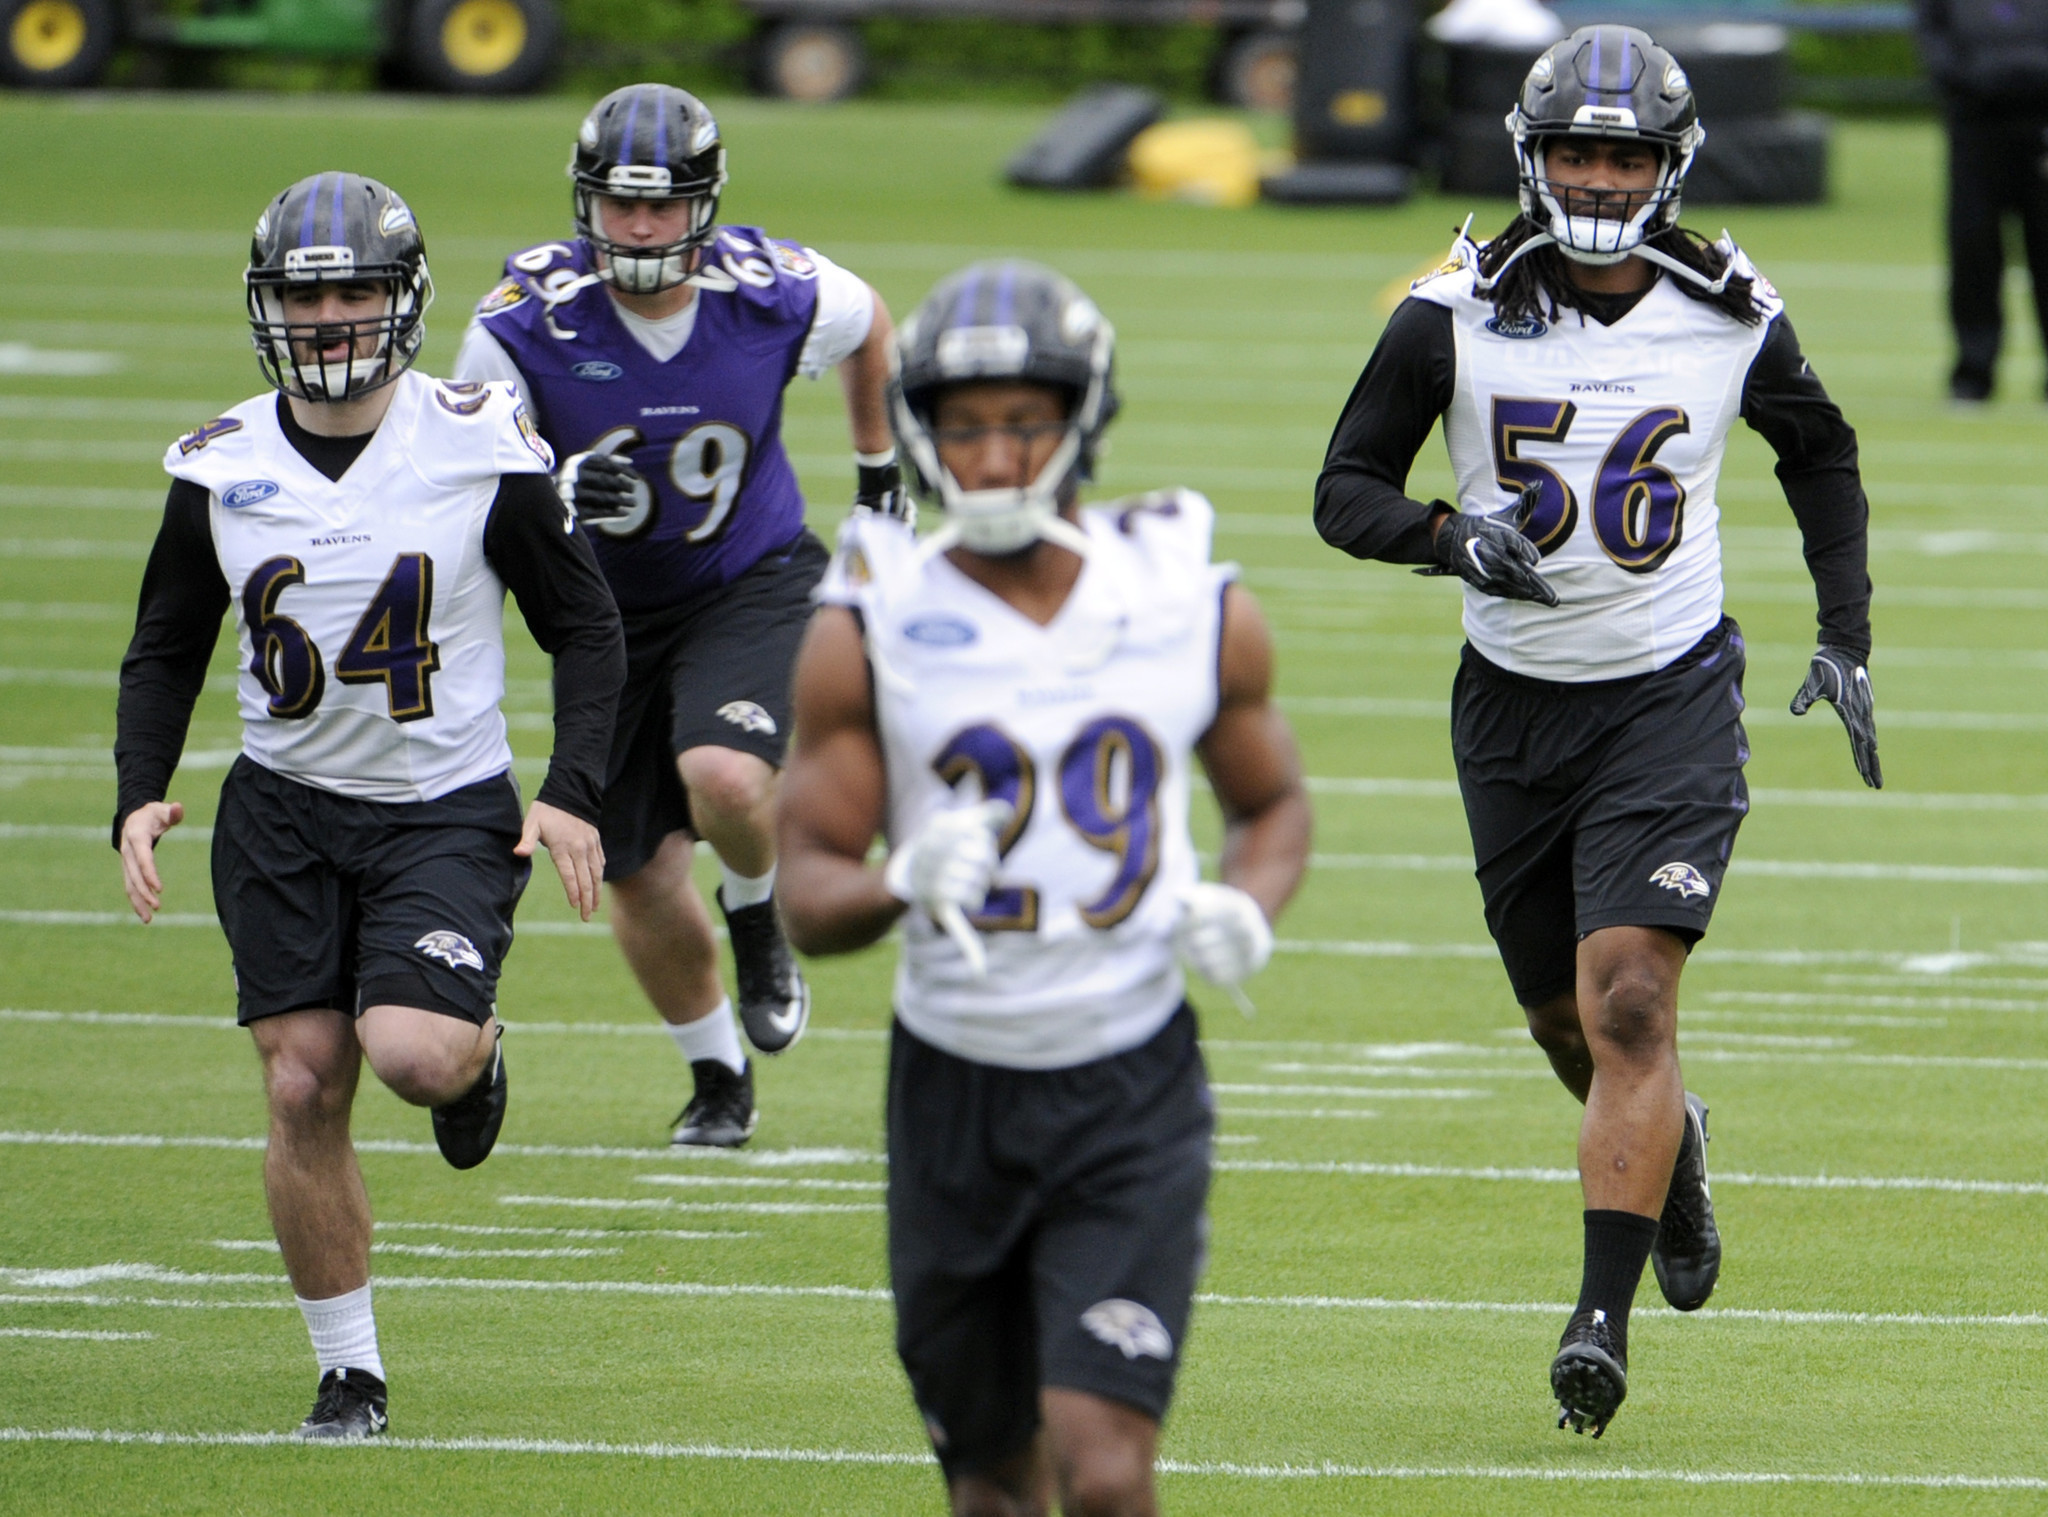 Bal-with-ravens-ota-focus-has-always-been-on-who-is-not-isn-t-participating-20170524